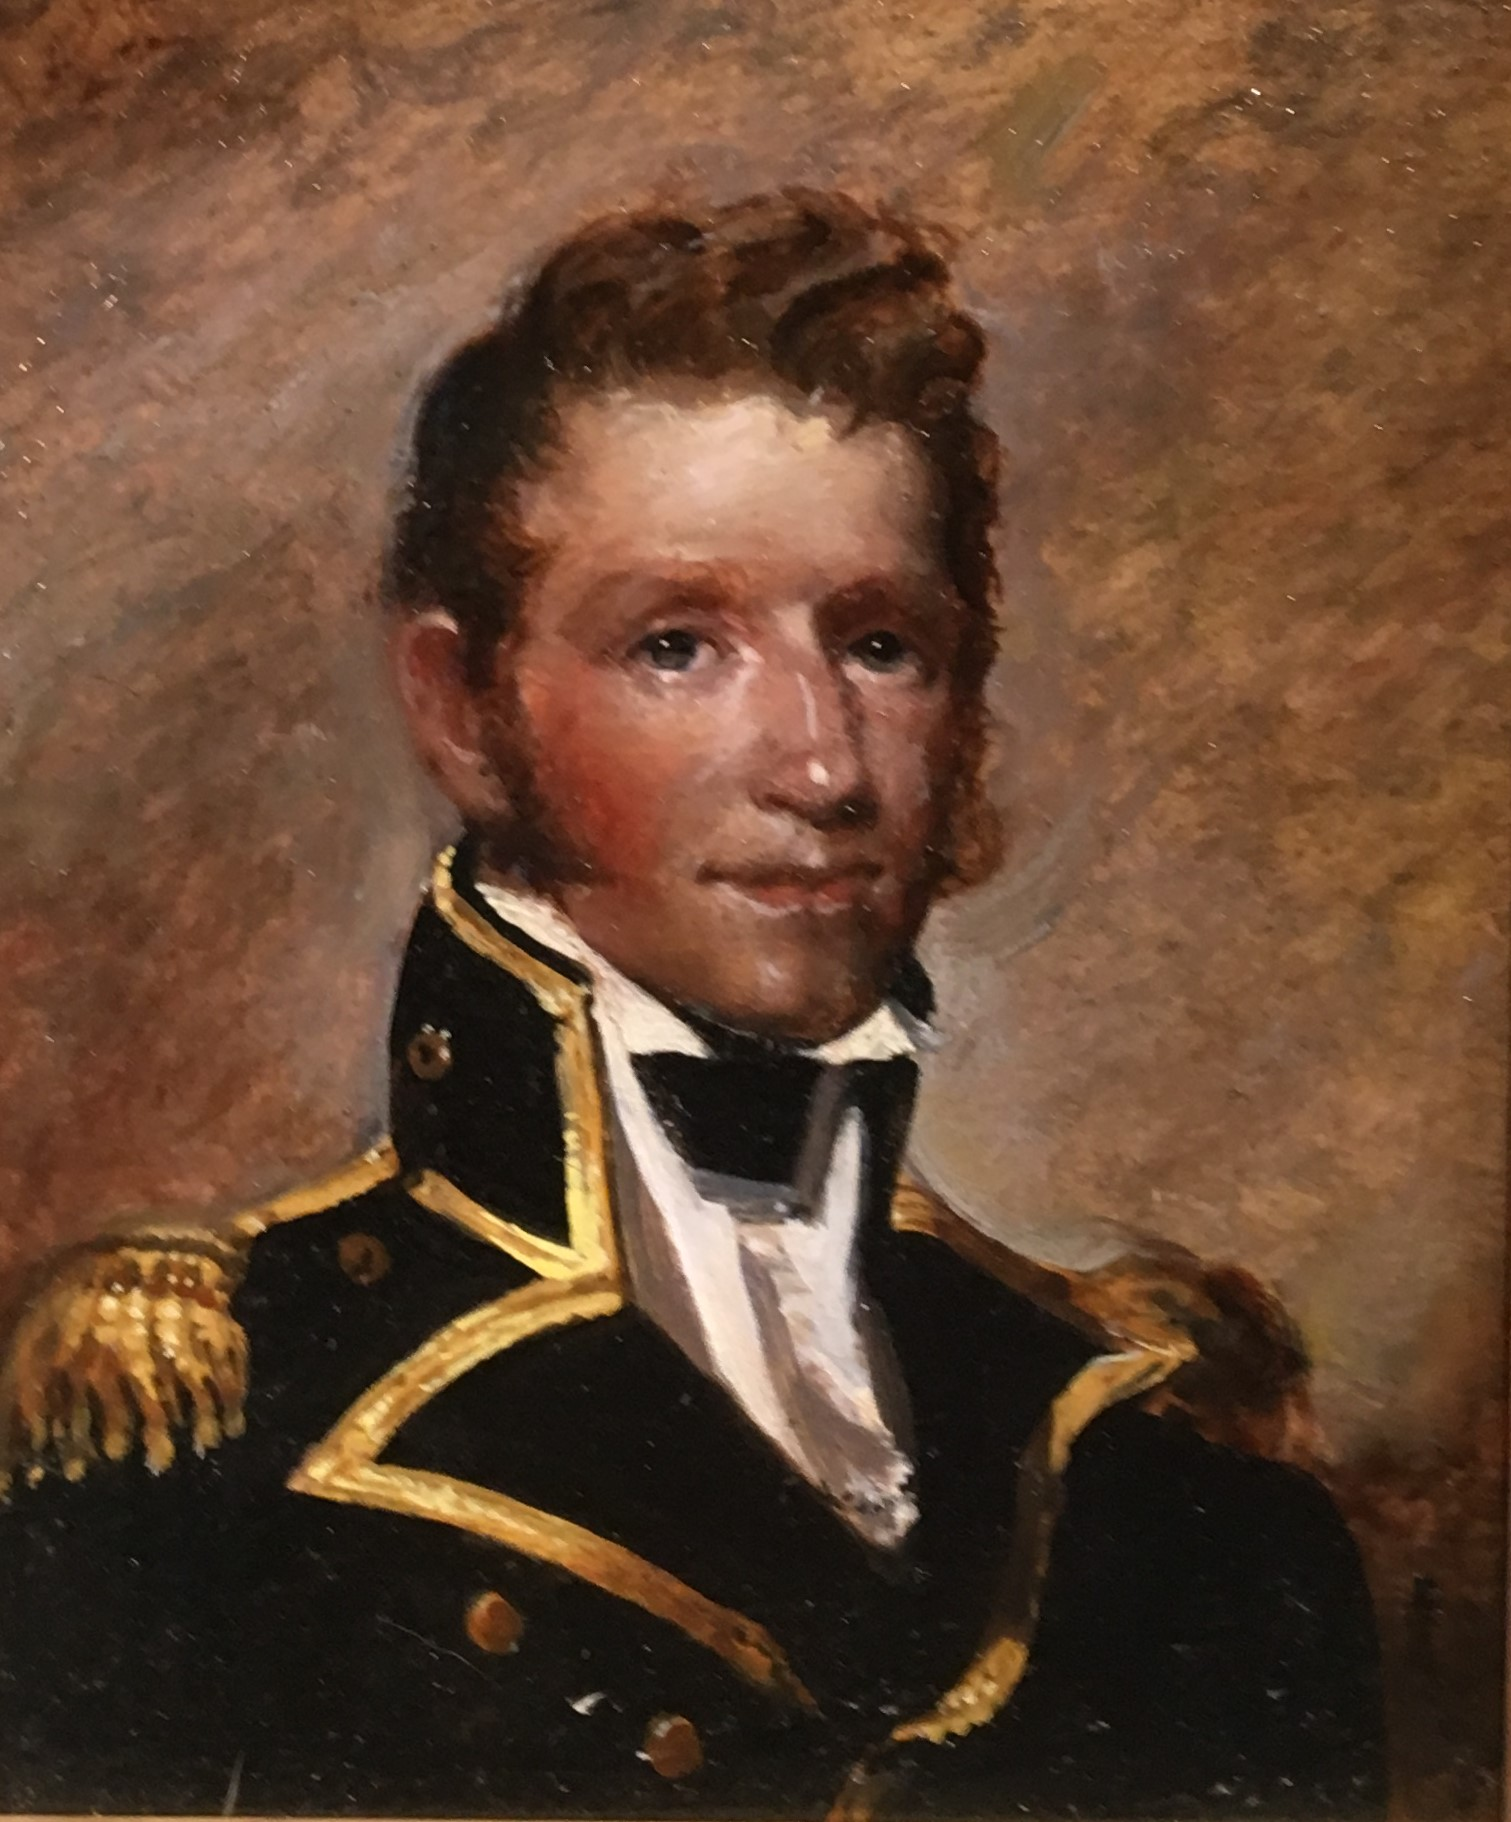 """PETER ARGUIMBAU    Capt. Thomas Macdonough     """"Hero of Lake Champlain""""   Macdonough, in command of  Saratoga , took control of Lake Champlain from the British during the Battle of Plattsburgh (also known as the Battle of Lake Champlain) during the War of 1812.  11 x 9 inches"""